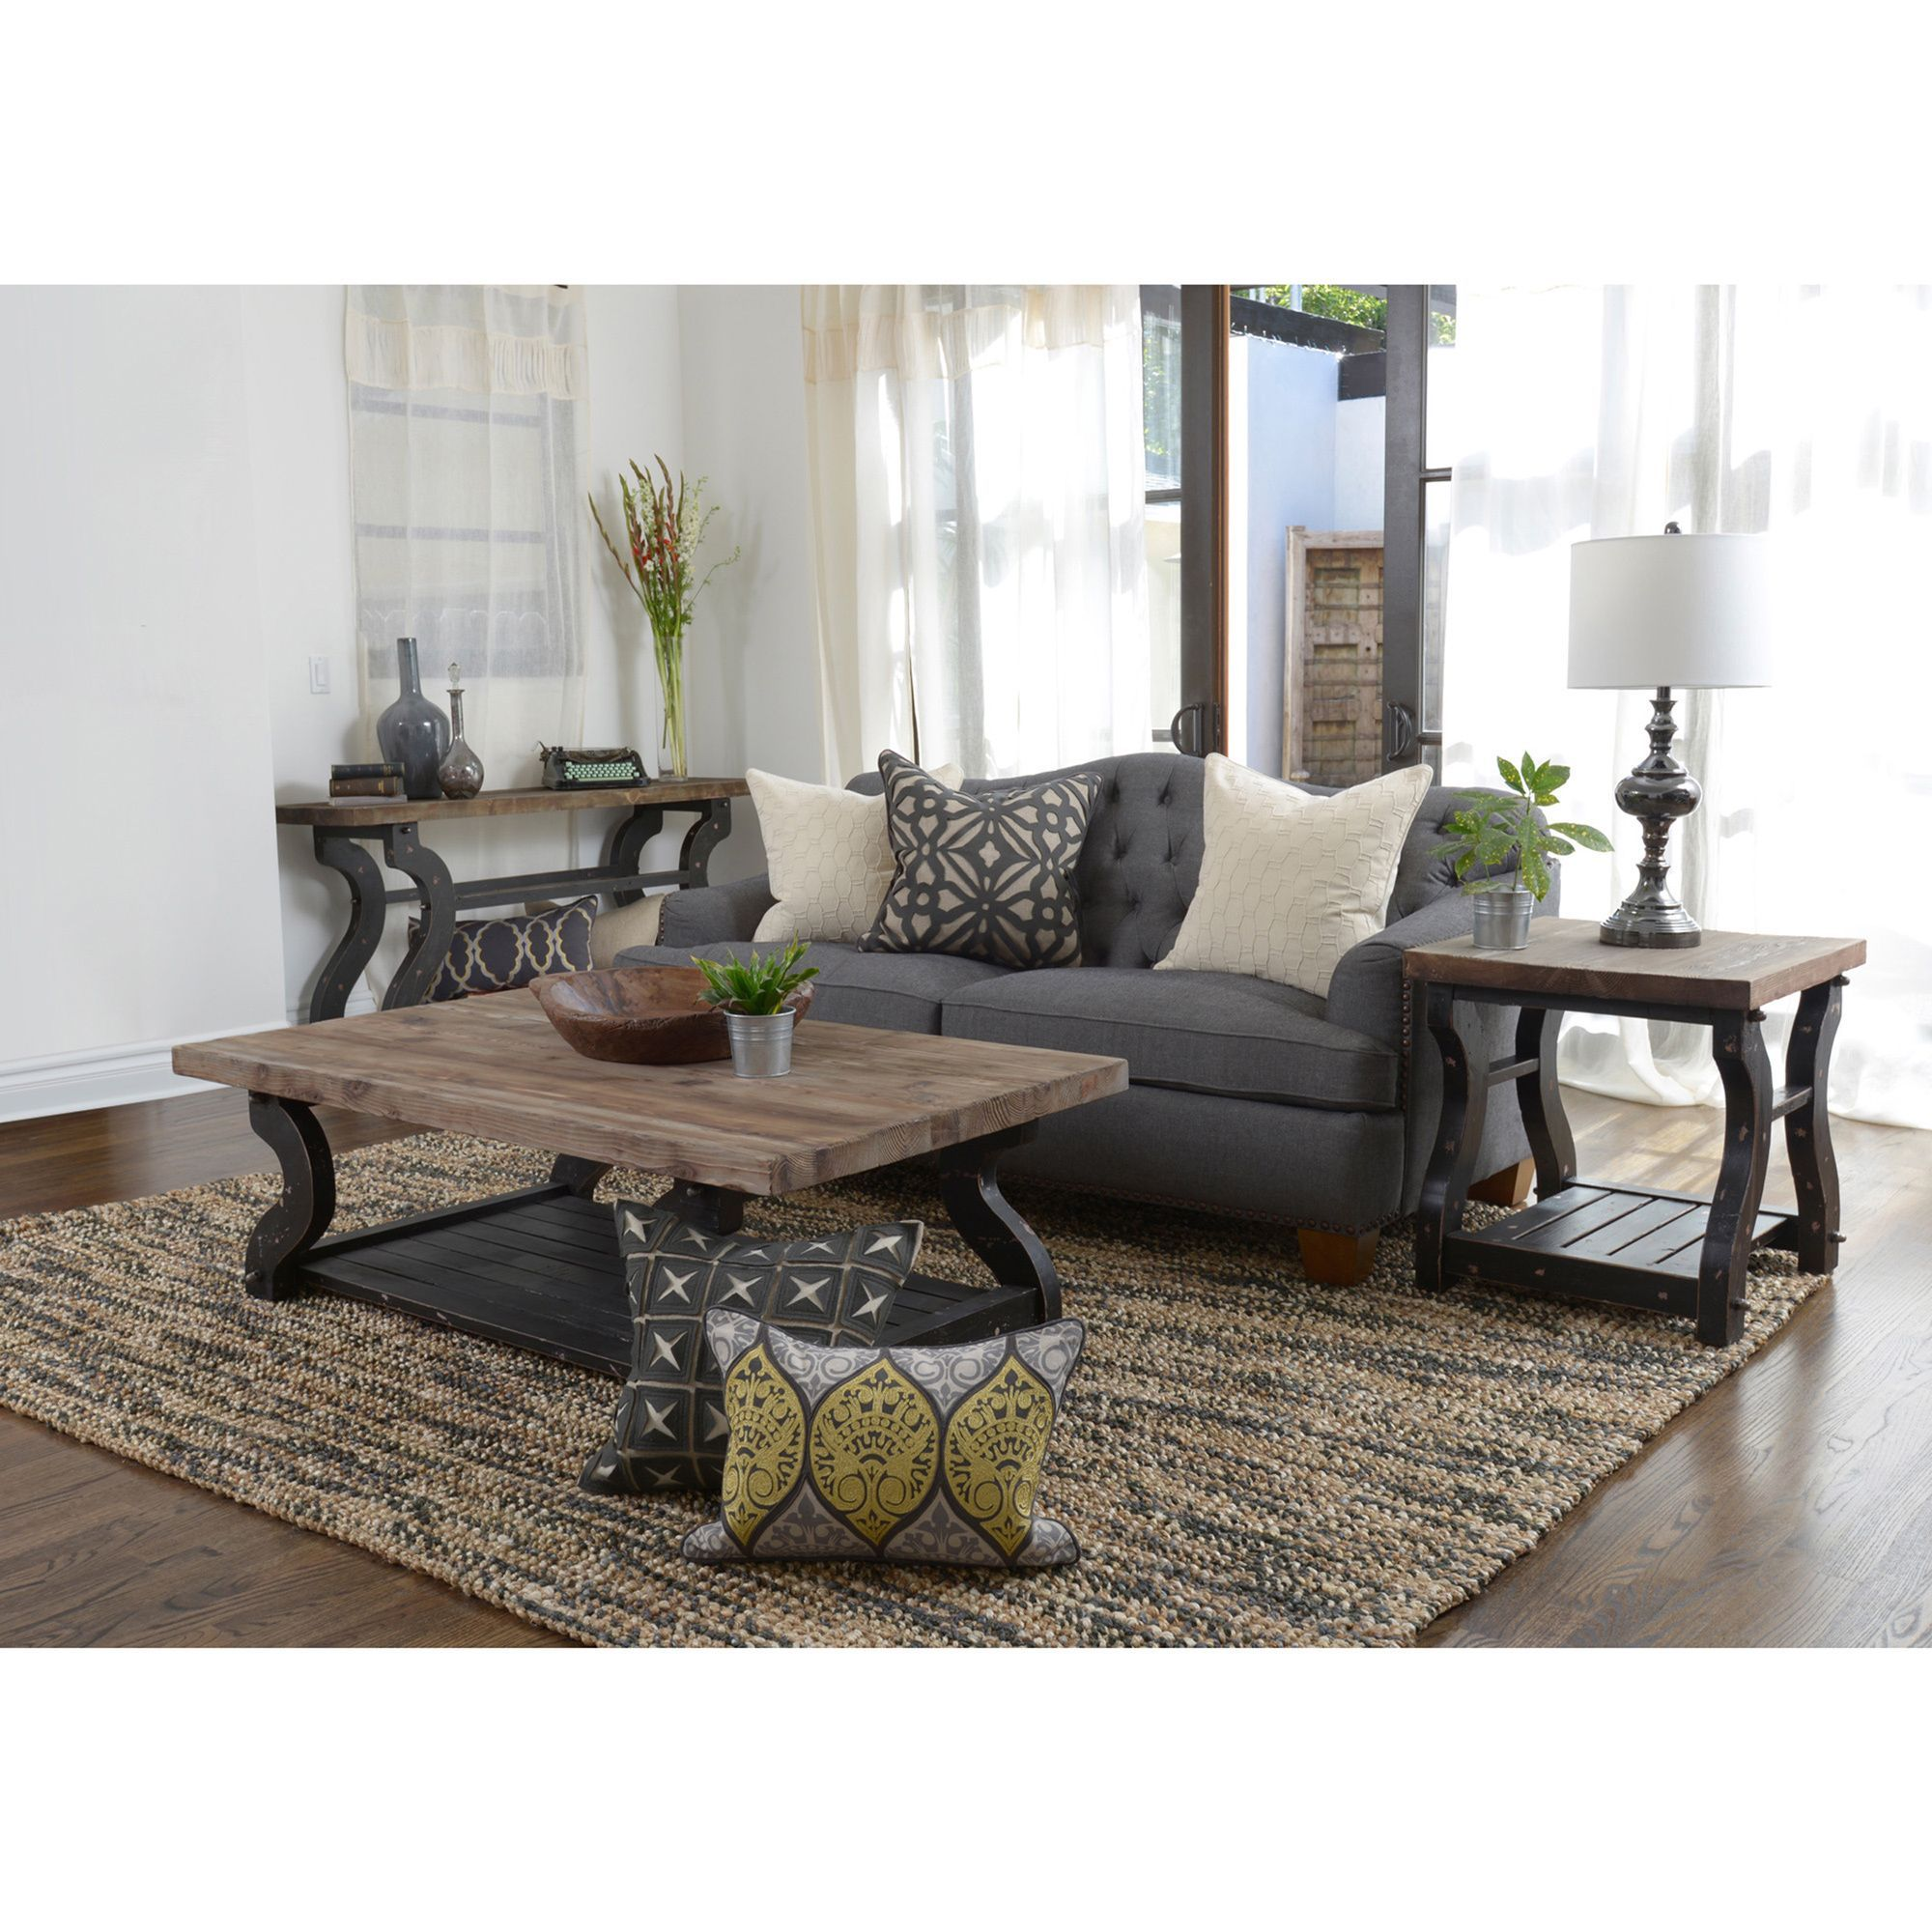 Add rustic charm to your home decor with the Satur coffee table